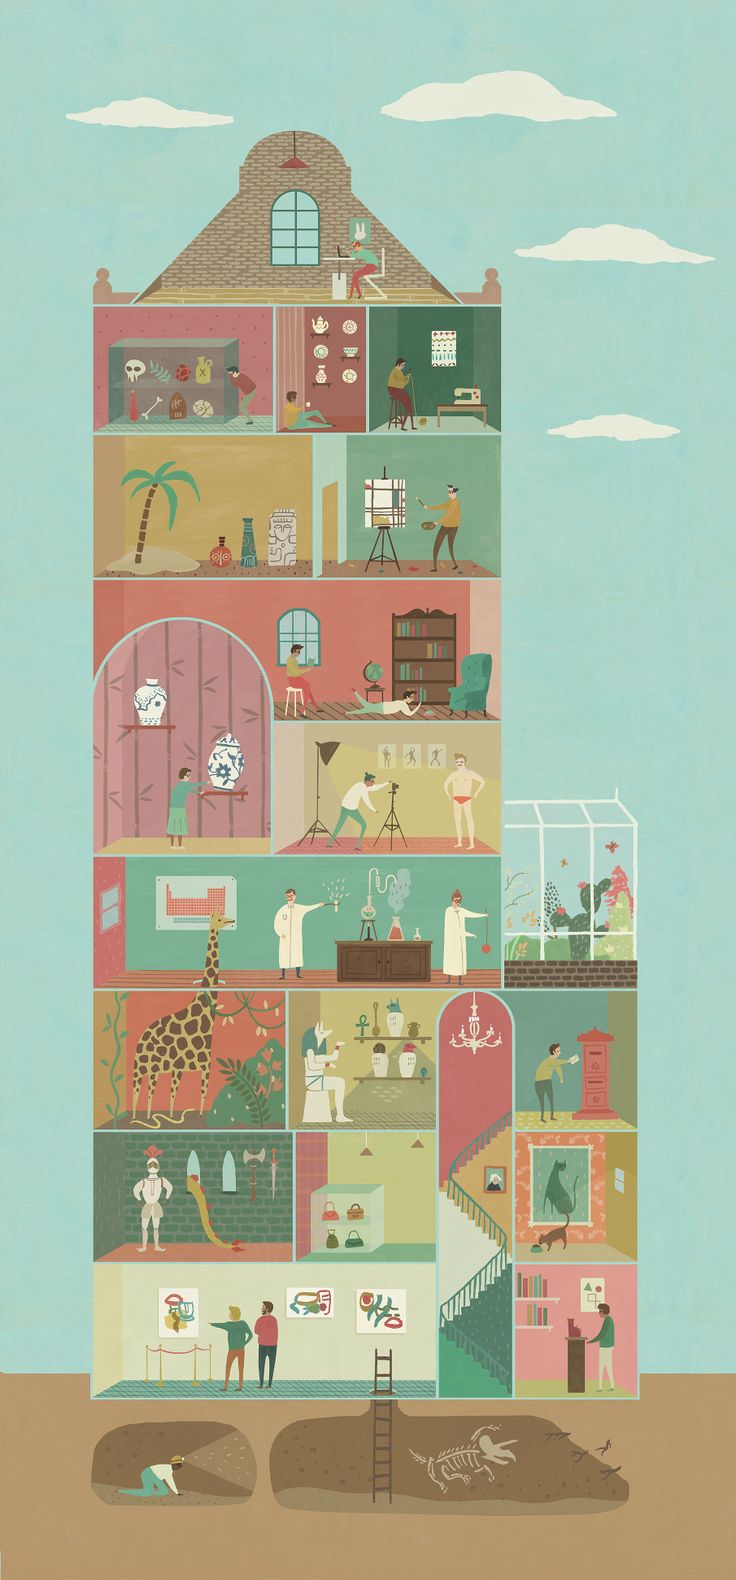 Flow museum poster ruby taylor illustration · house drawingflow